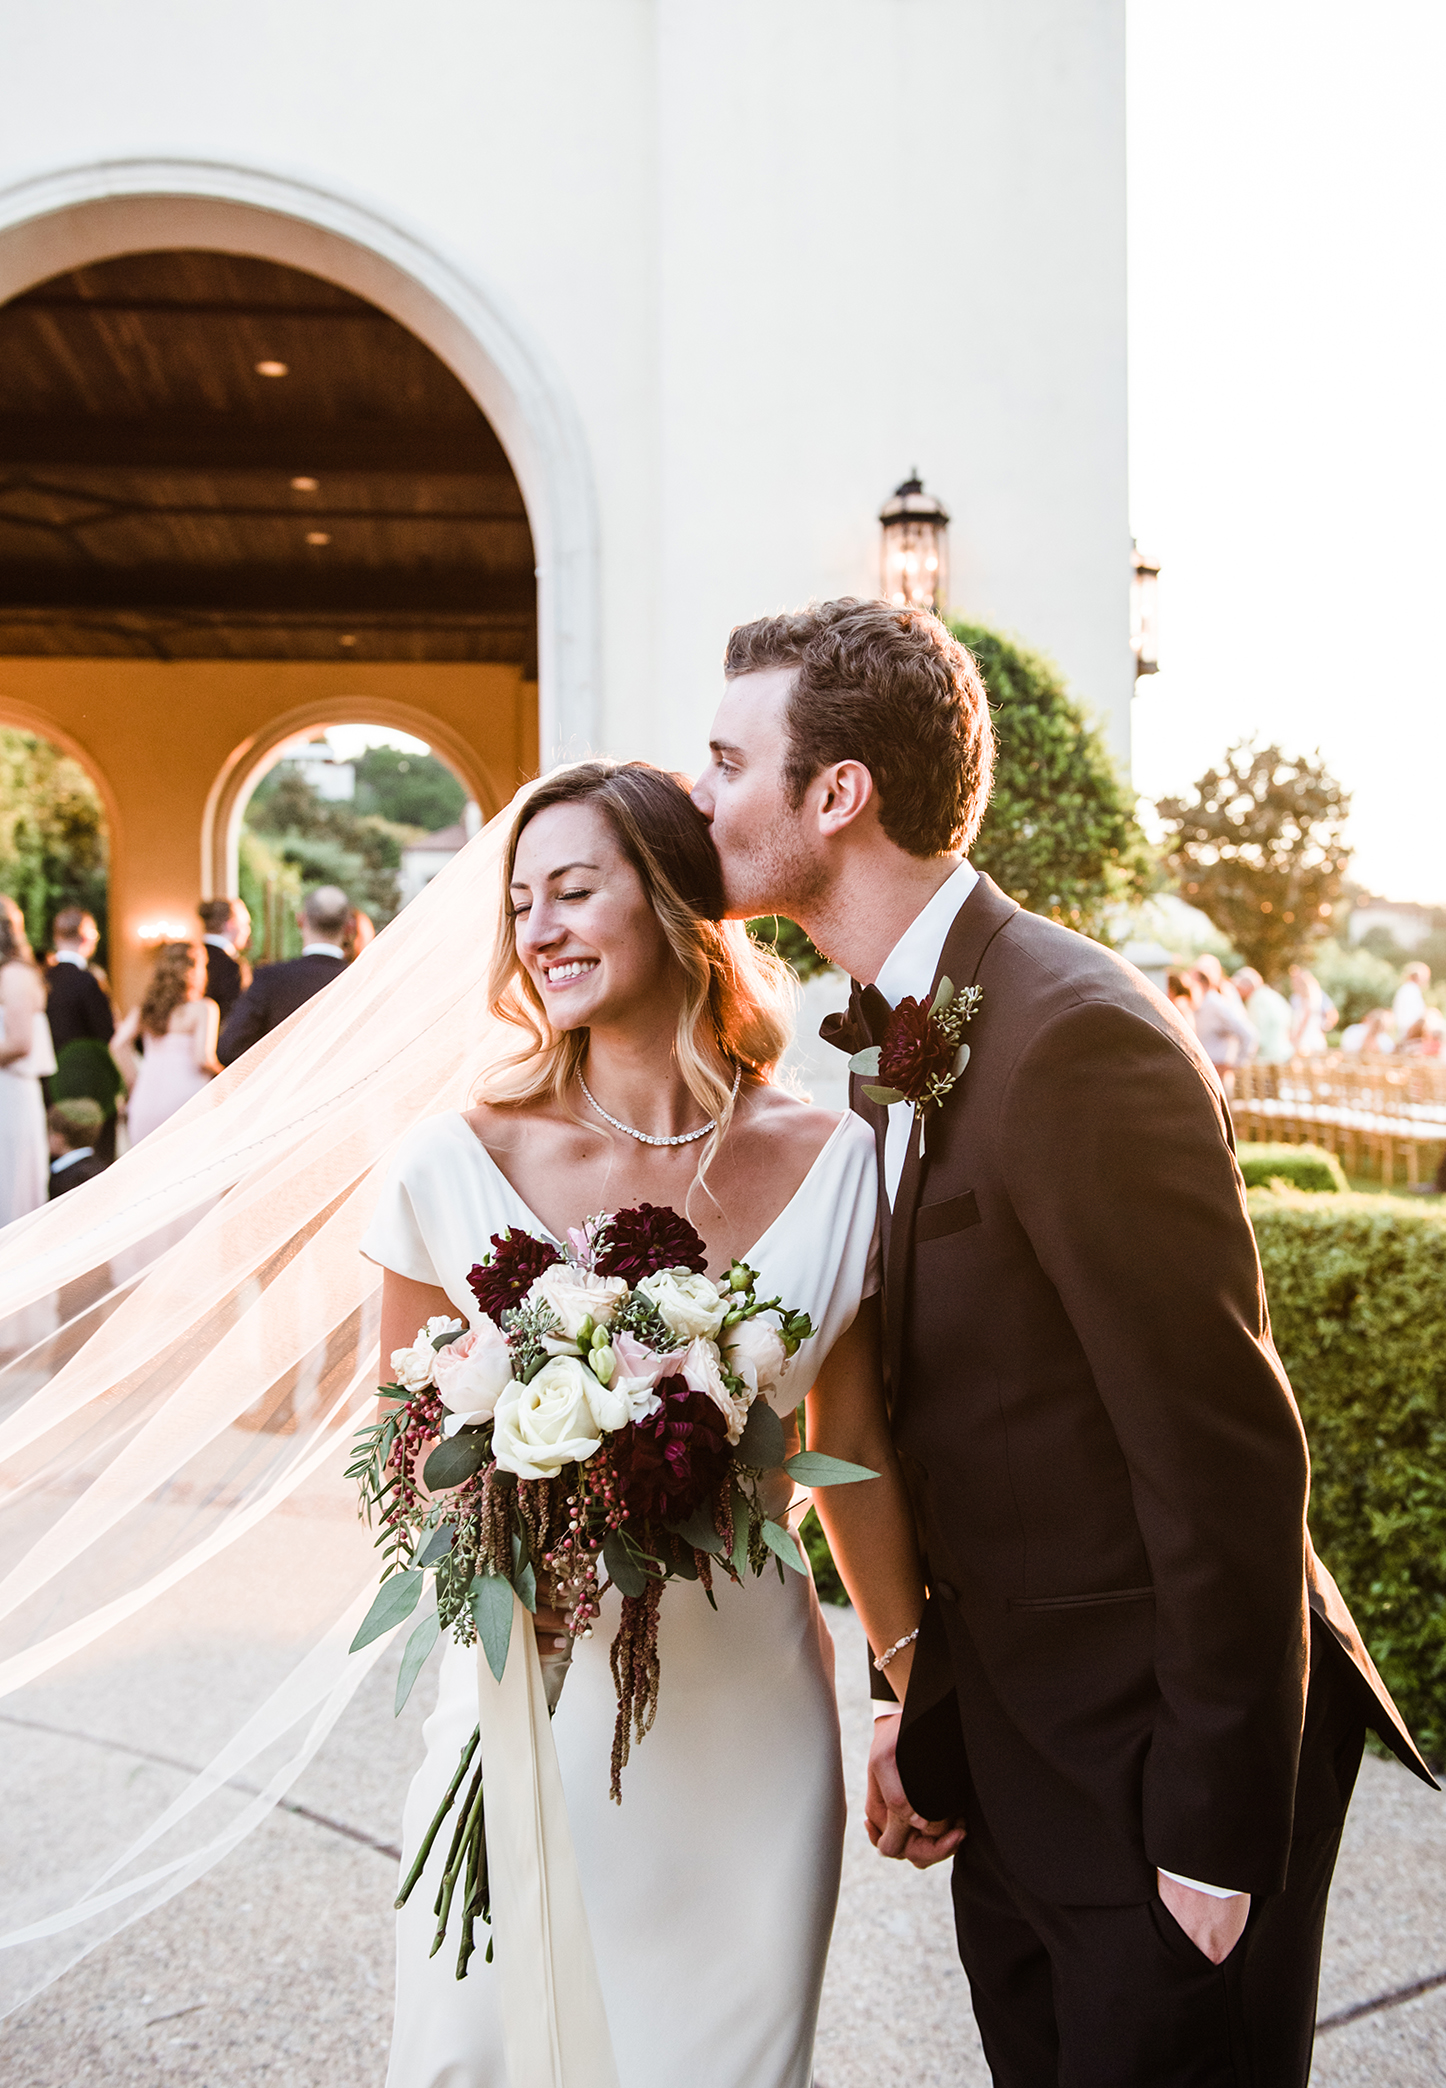 livvyland-blog-olivia-watson-wedding-villa-del-lago-austin-texas-fall-blush-burgundy-classic-romantic-after-ceremony